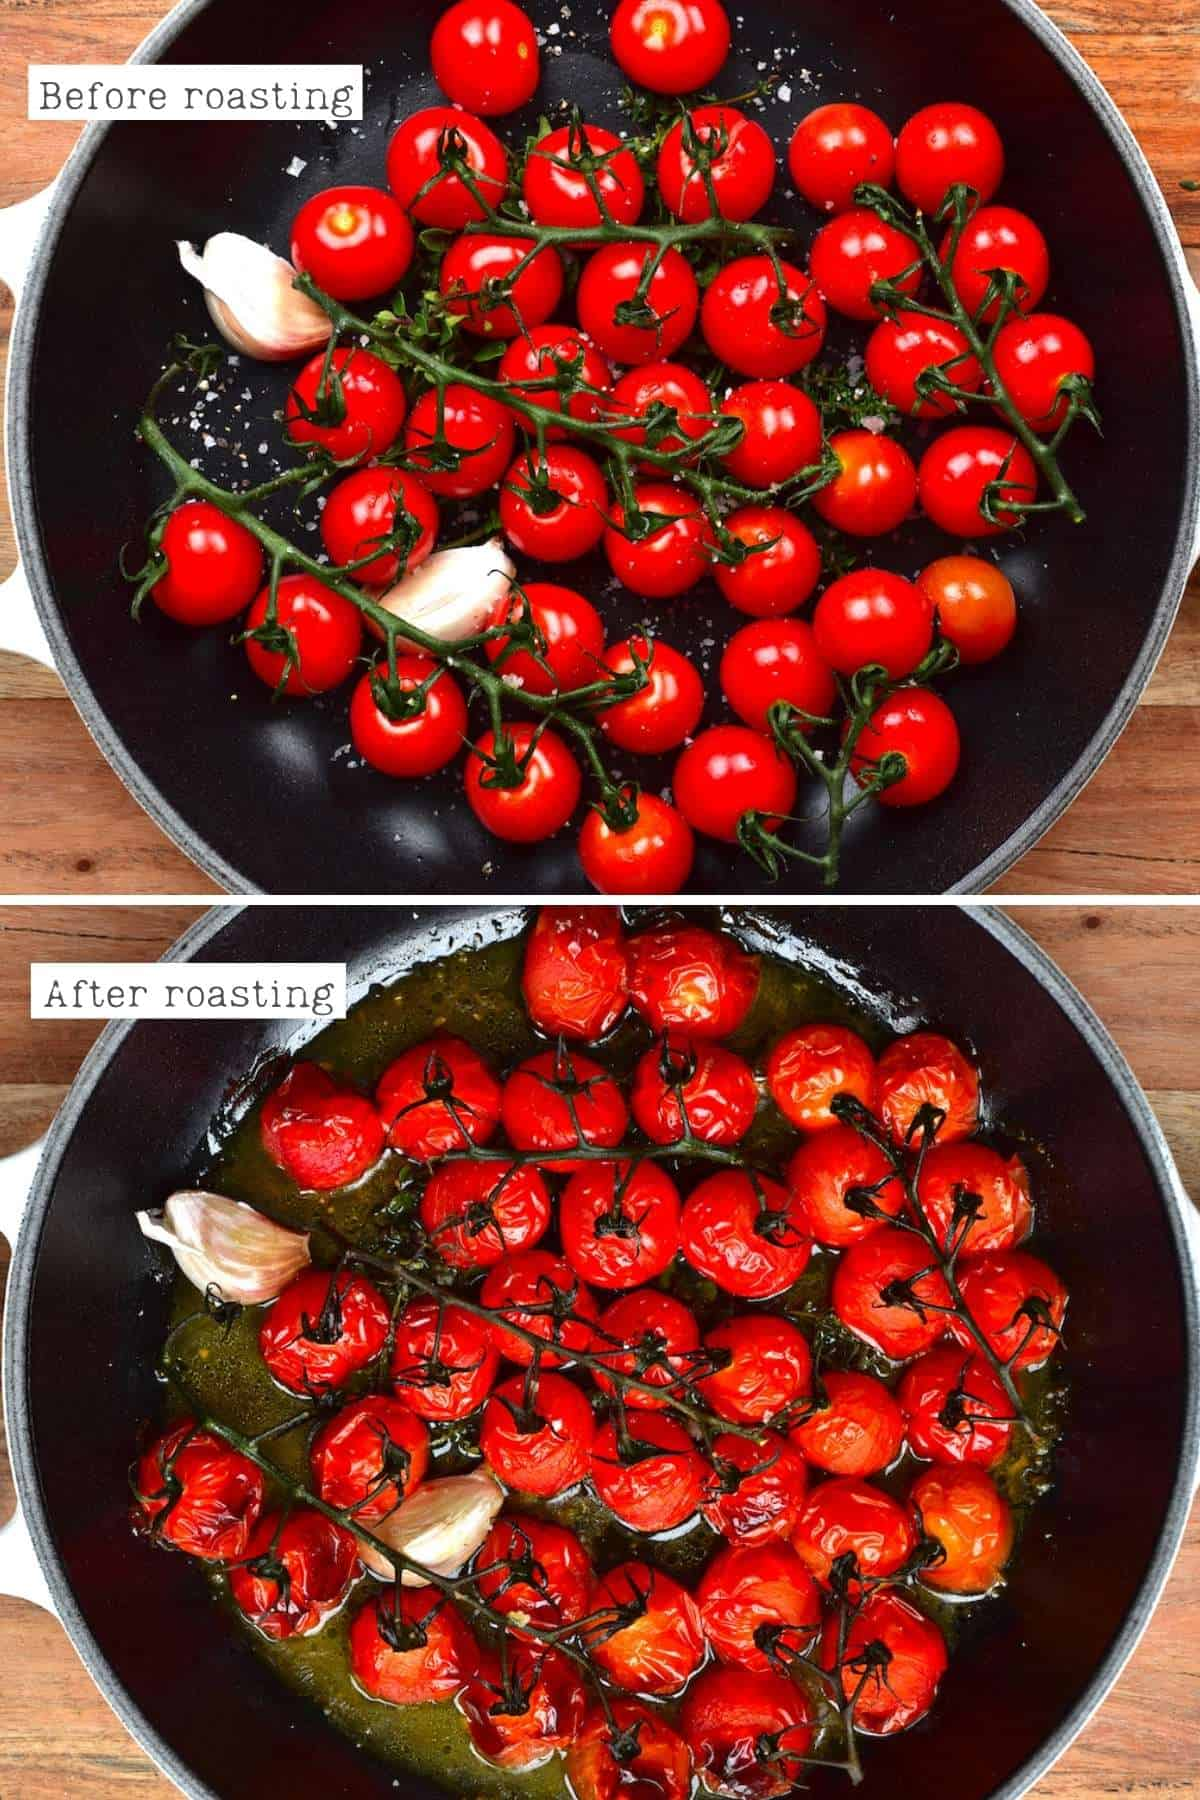 Steps for roasting tomatoes